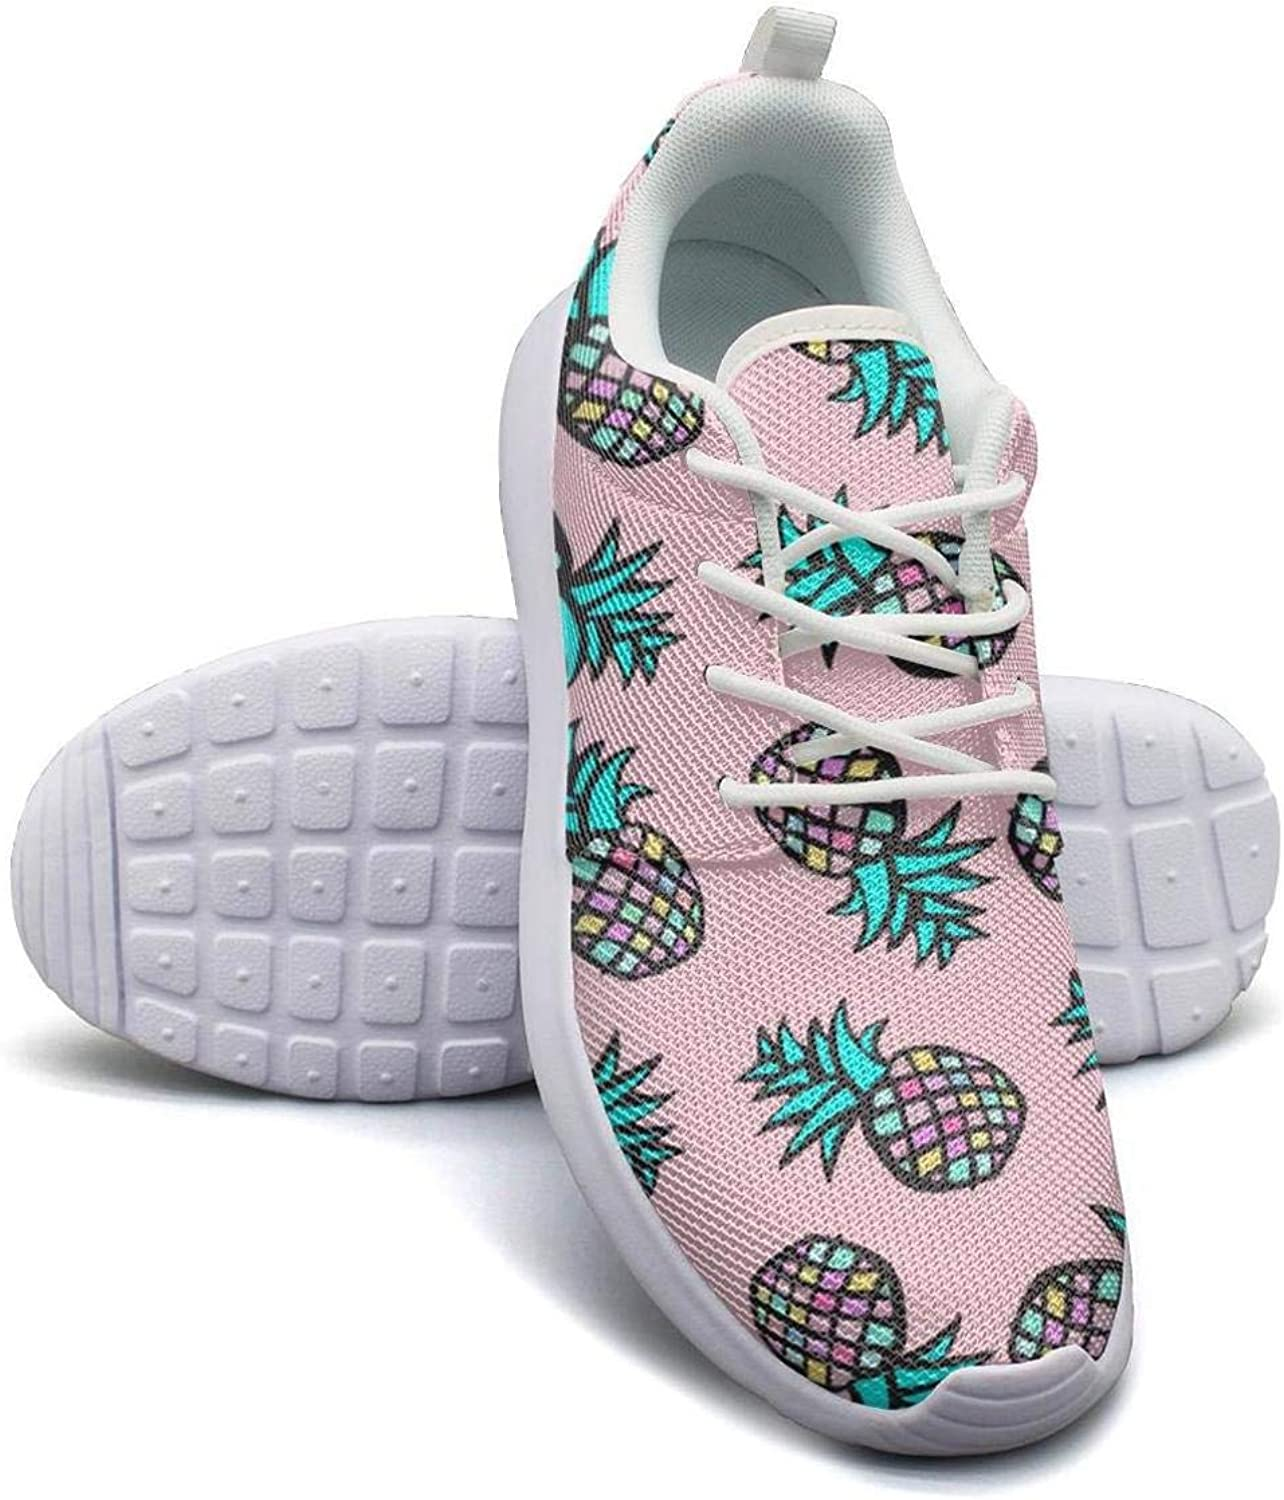 Kanf saysfg Pink Pineapple Fashion Running Sneakers for Women Lightweight Breathabl Tennis shoes